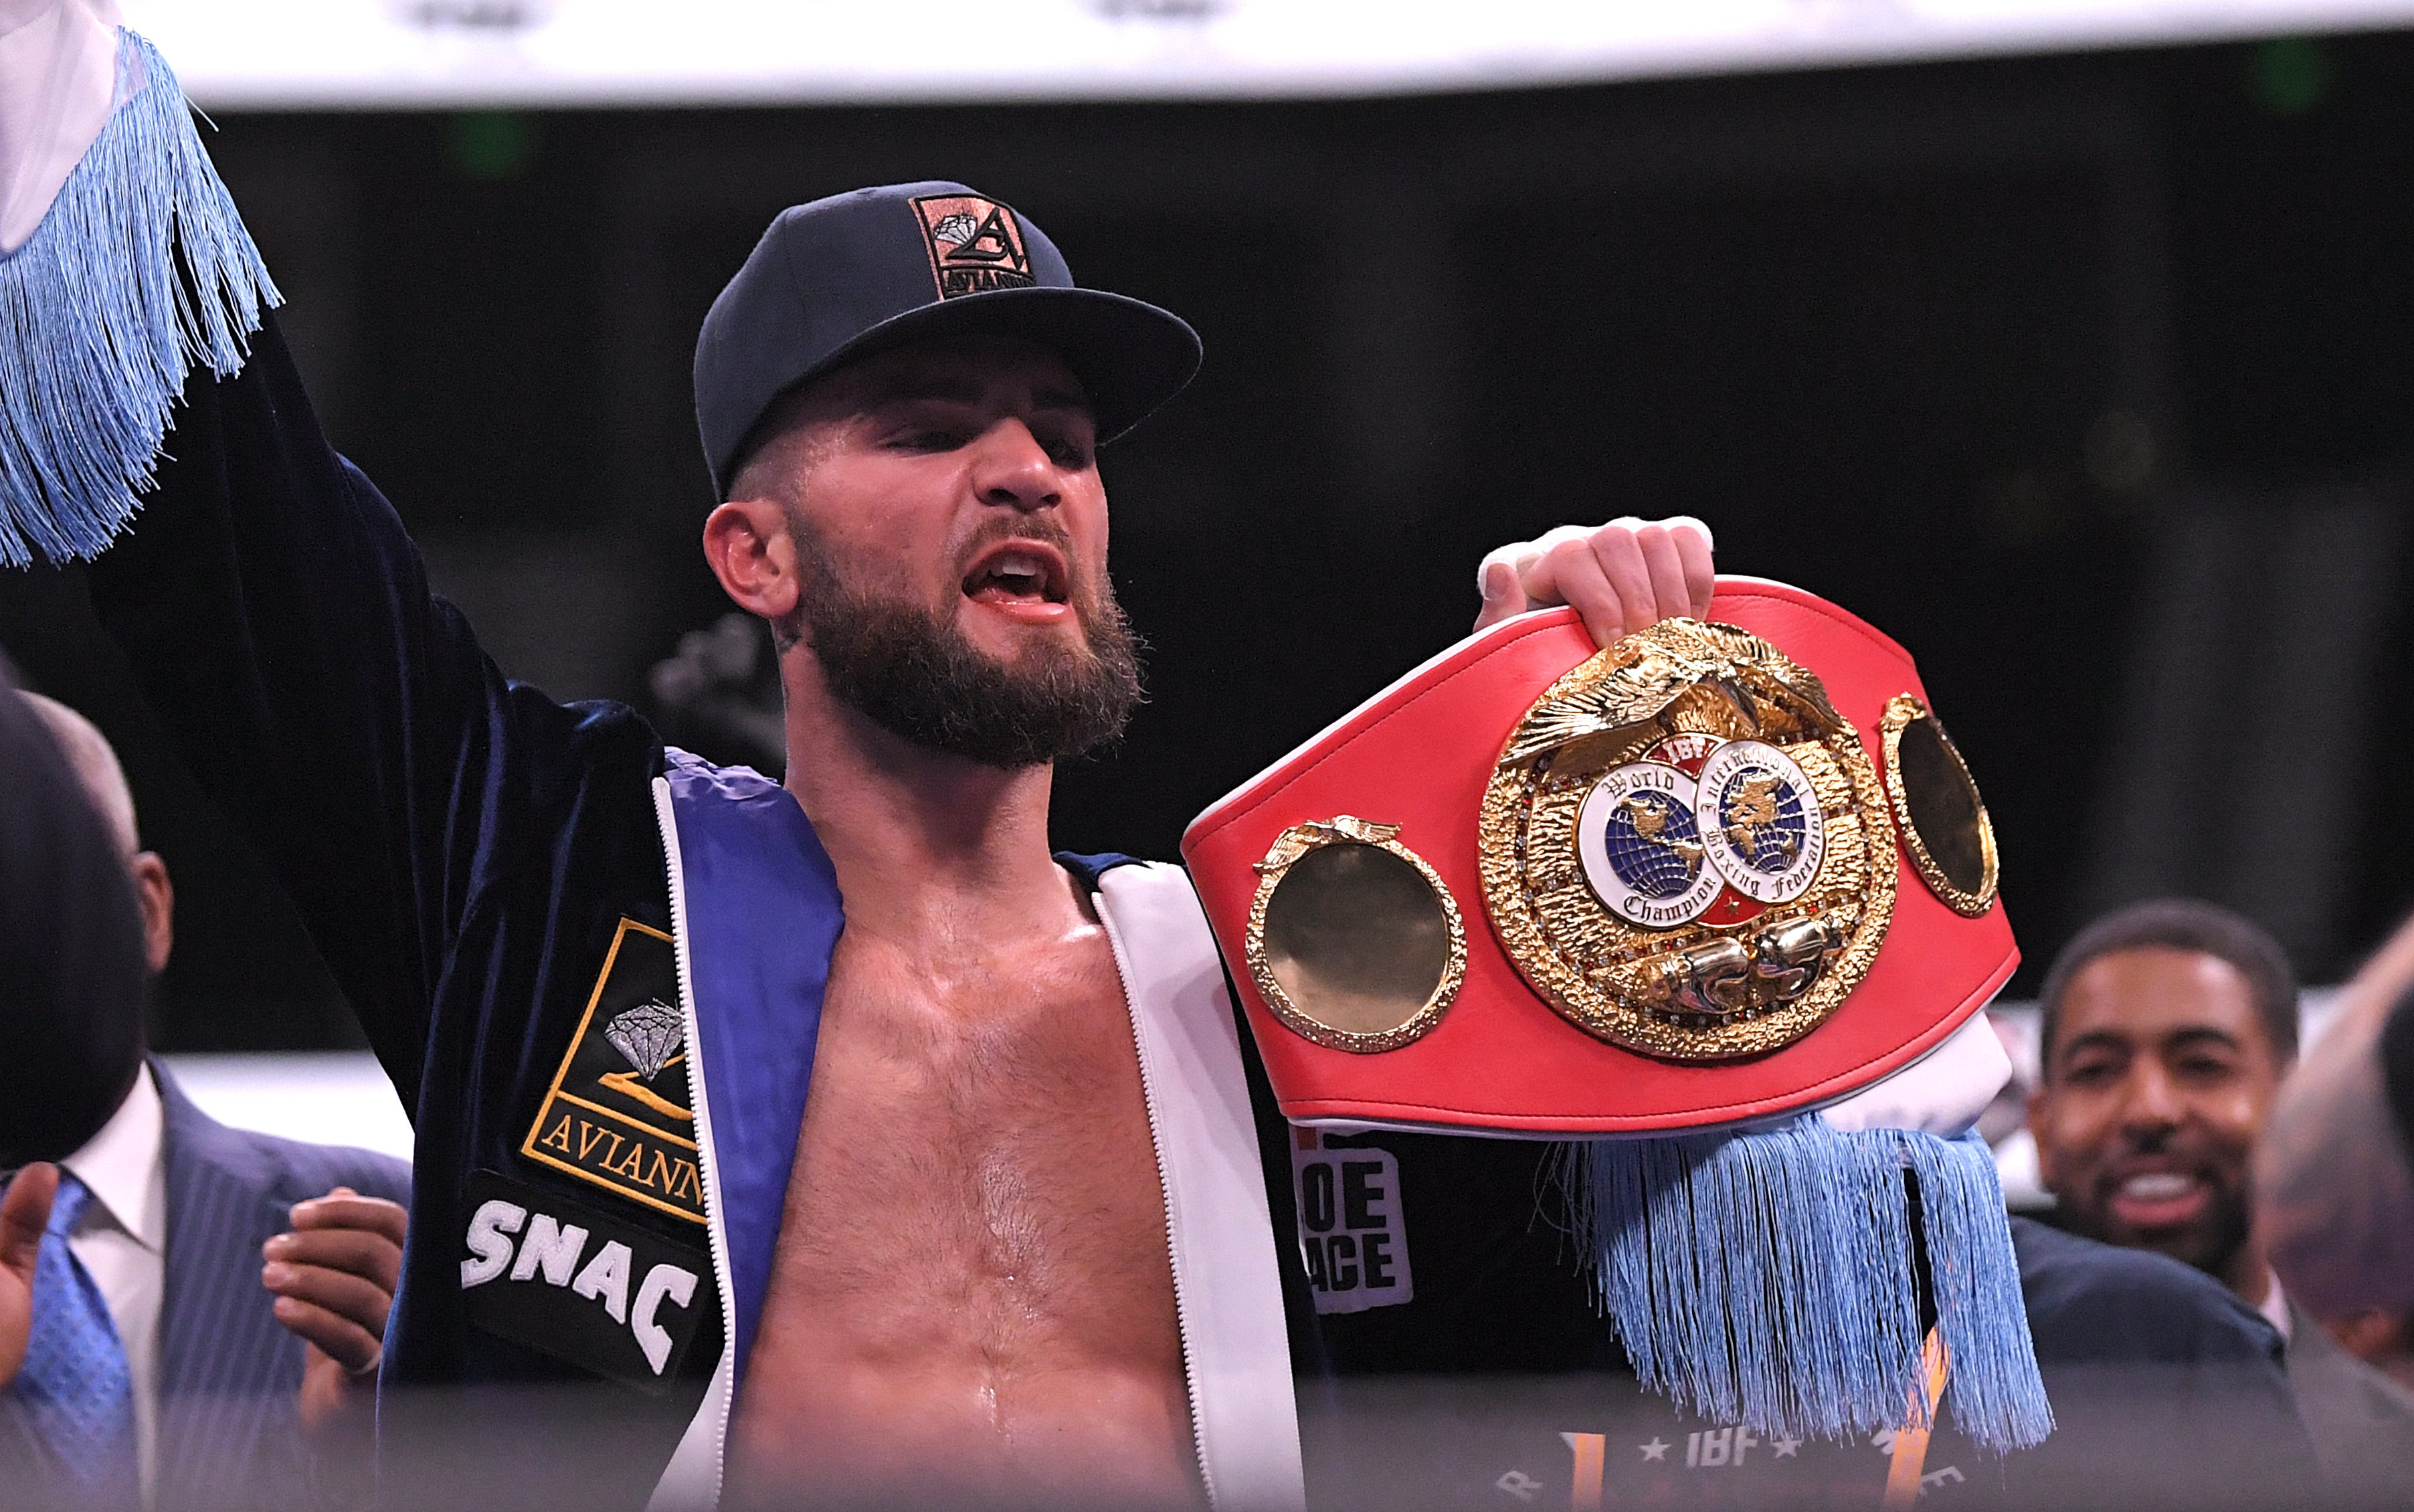 For next fight, Caleb Plant wants David Benavidez in unification bout